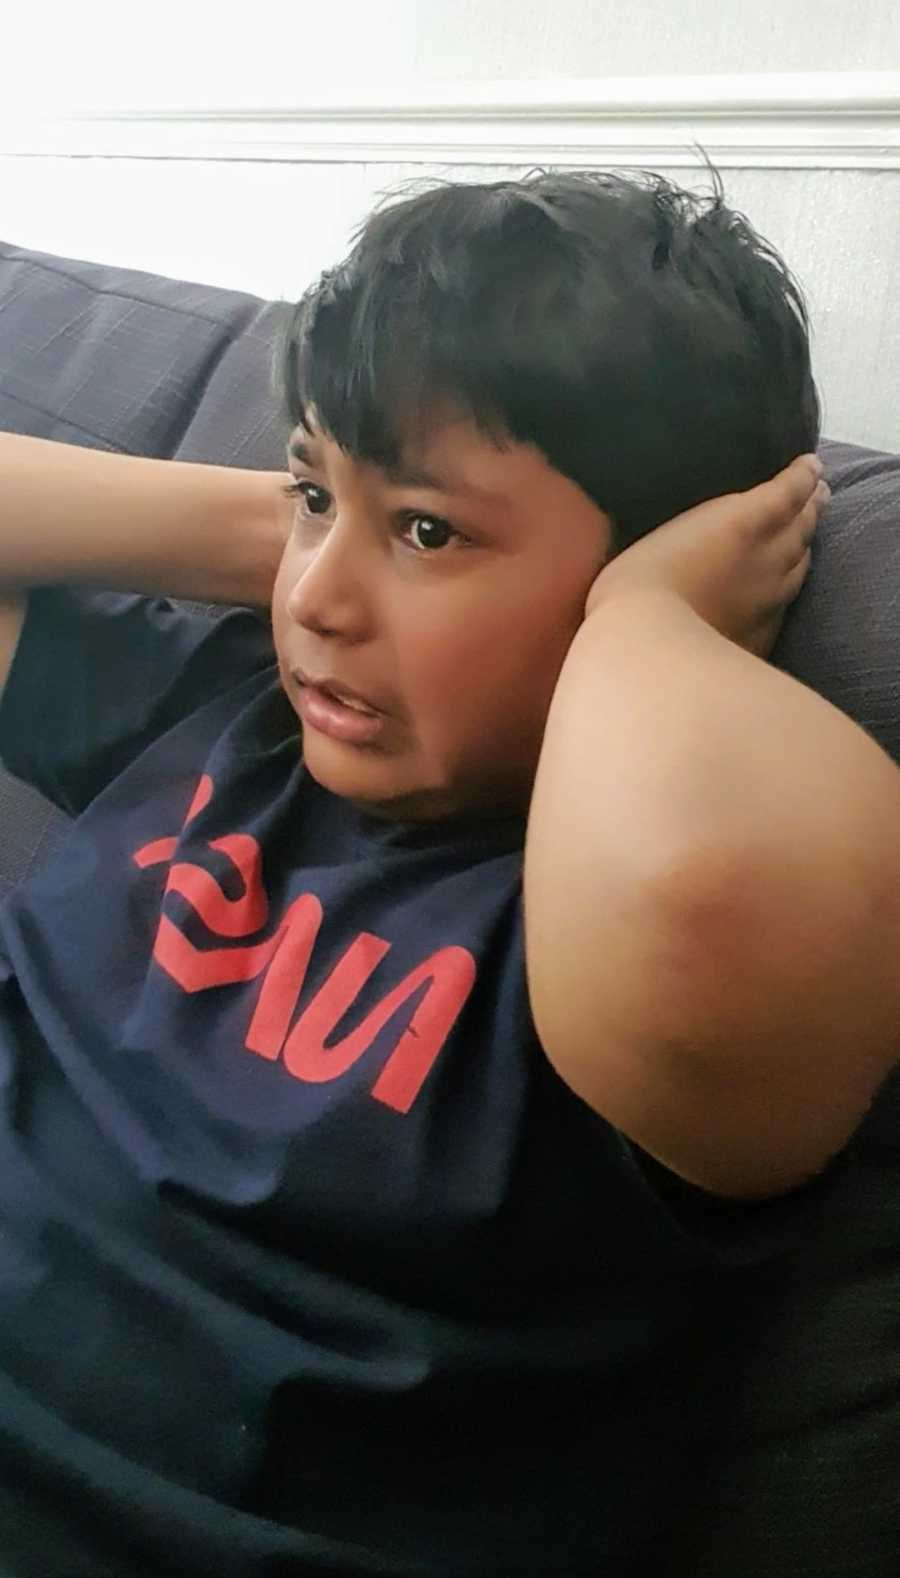 A boy with nonverbal autism covers his ears